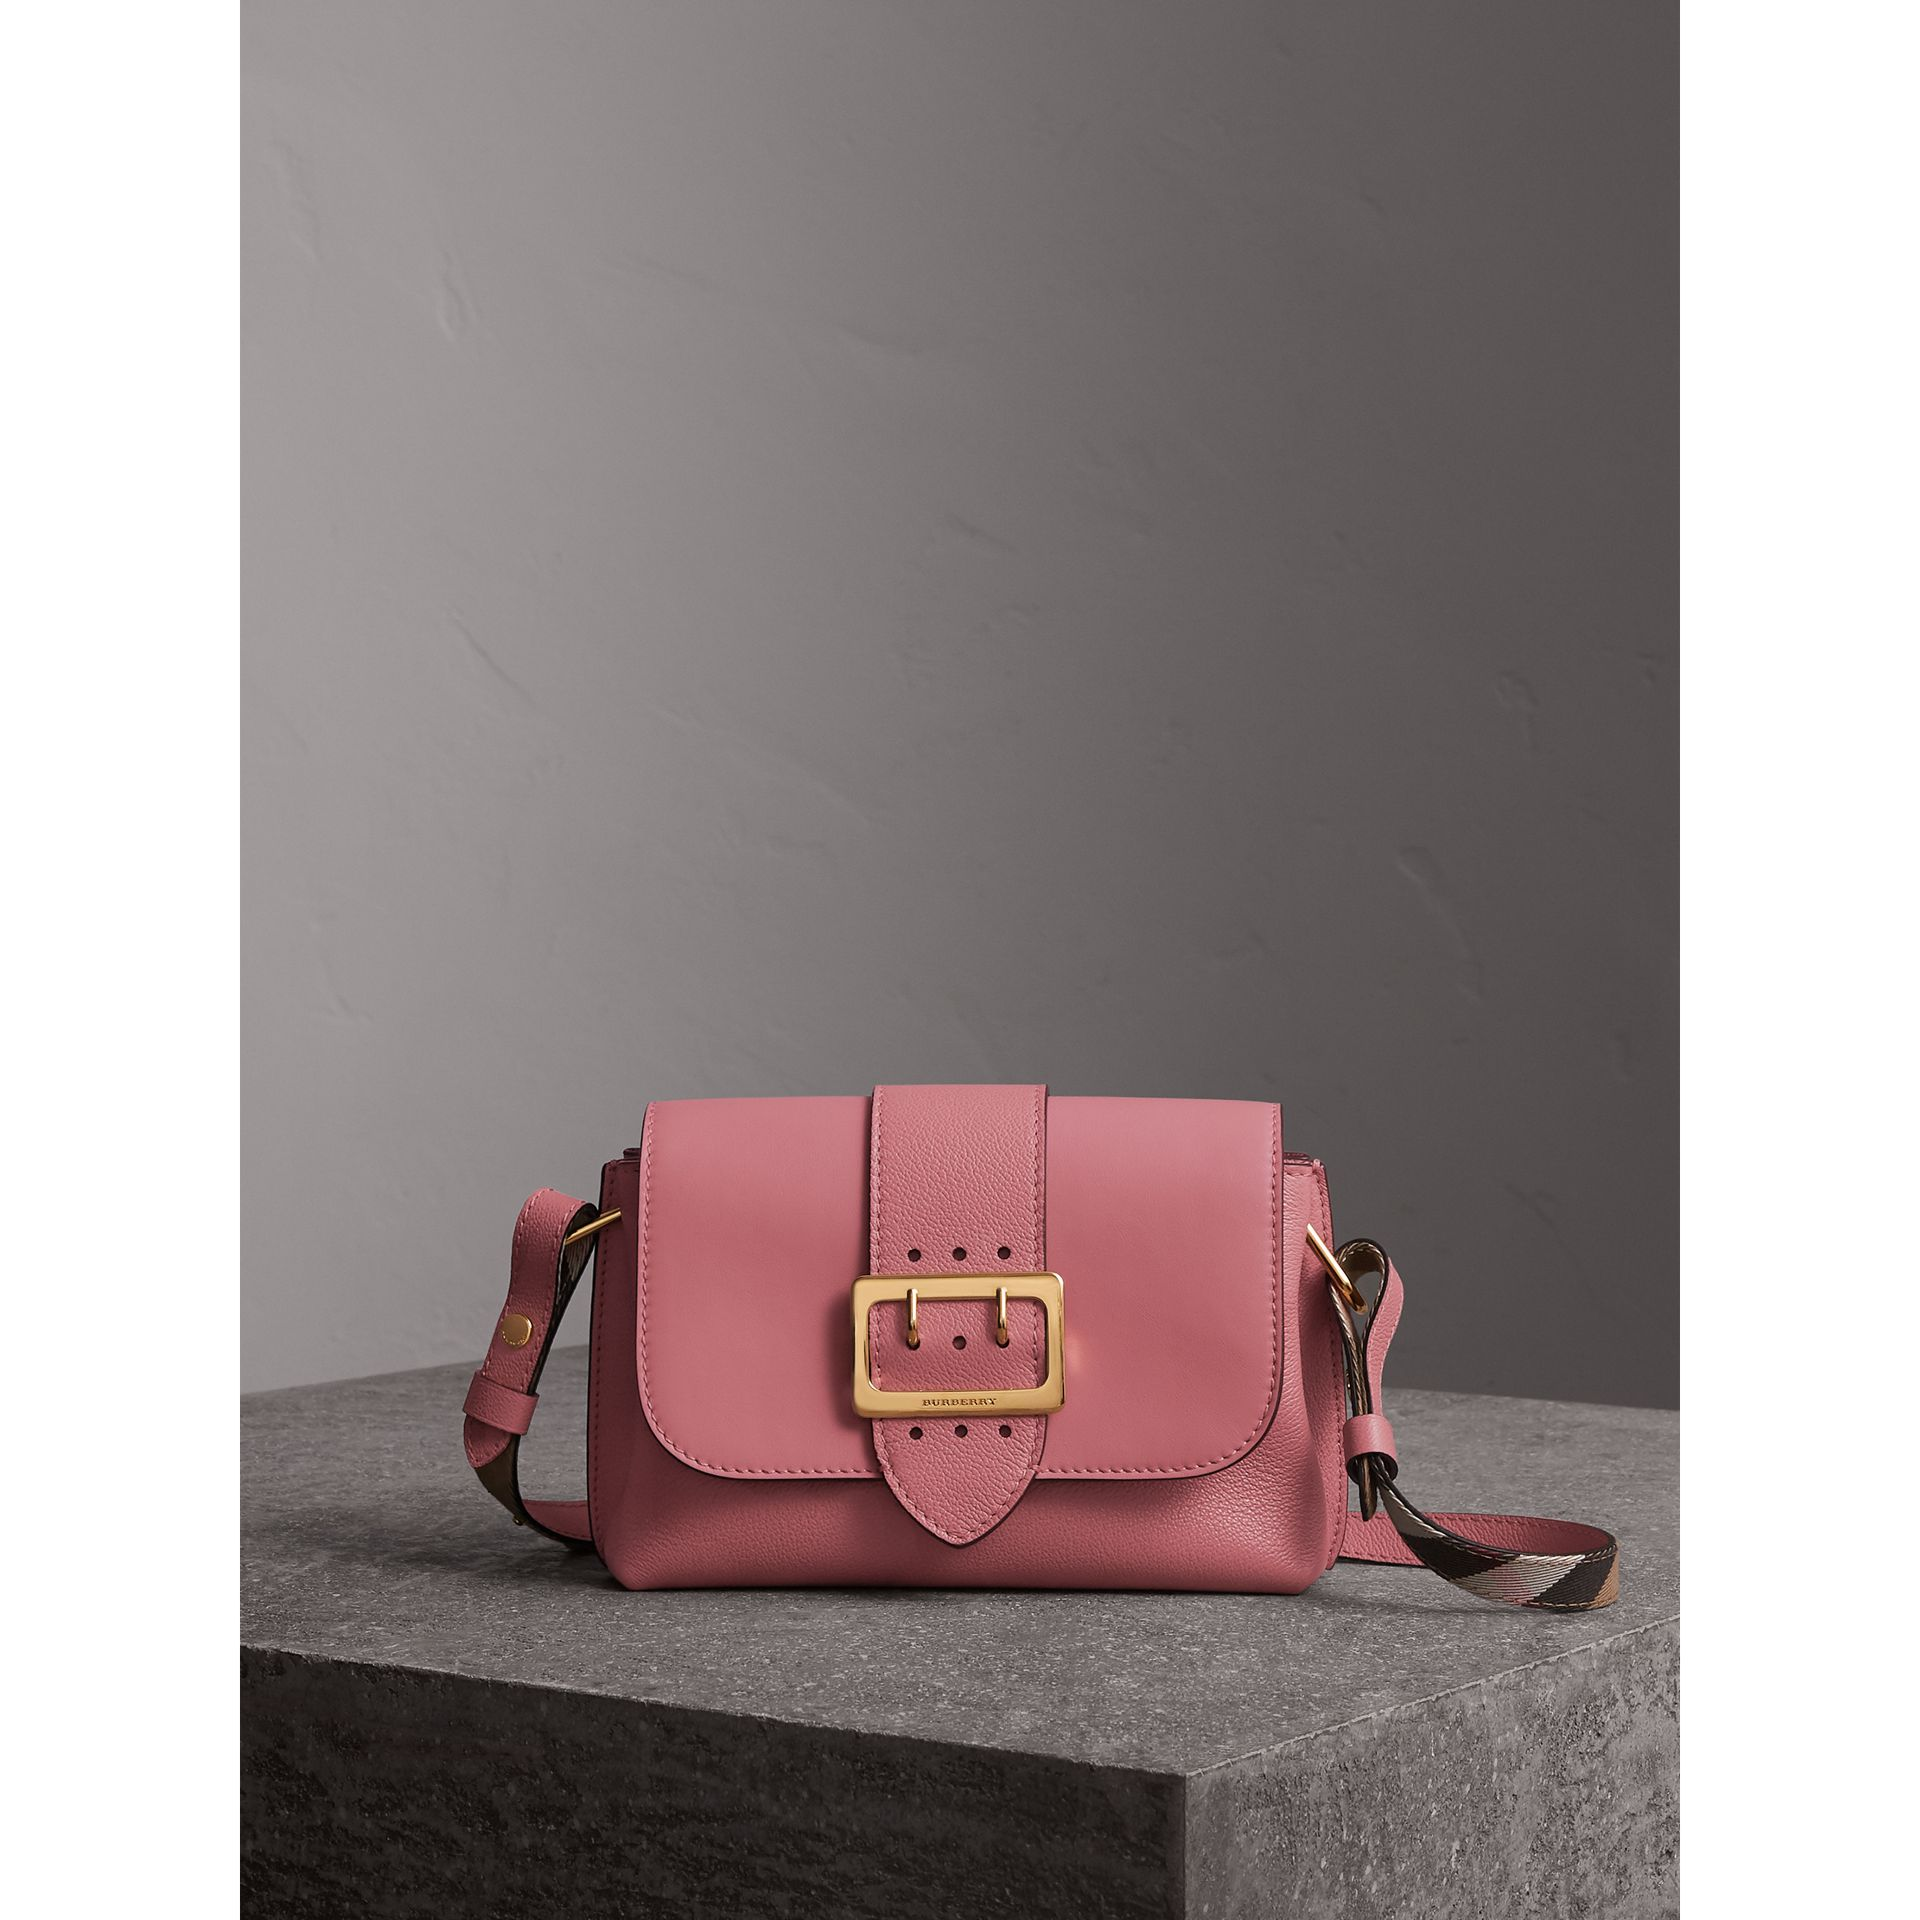 The Buckle Crossbody Bag in Leather in Dusty Pink - Women | Burberry - gallery image 1